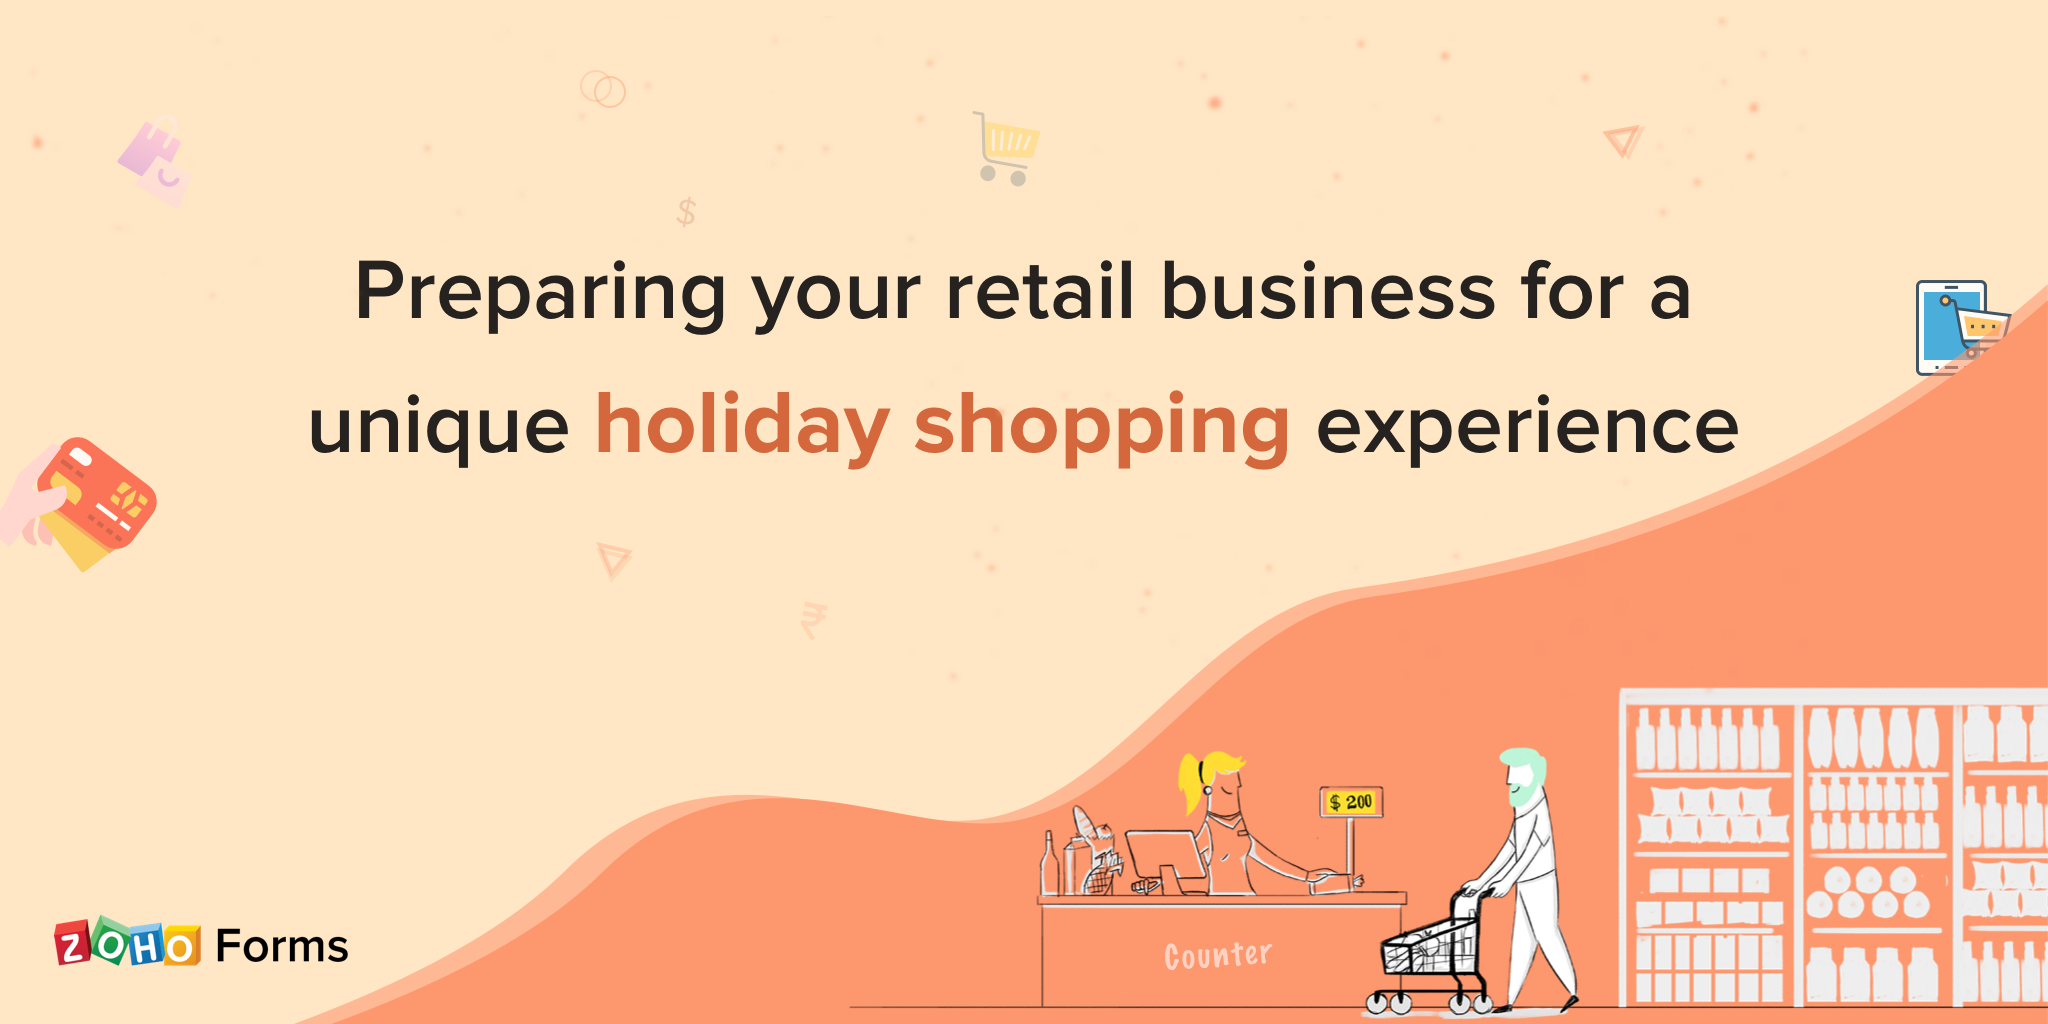 Preparing your retail business for a unique holiday shopping experience in 2020